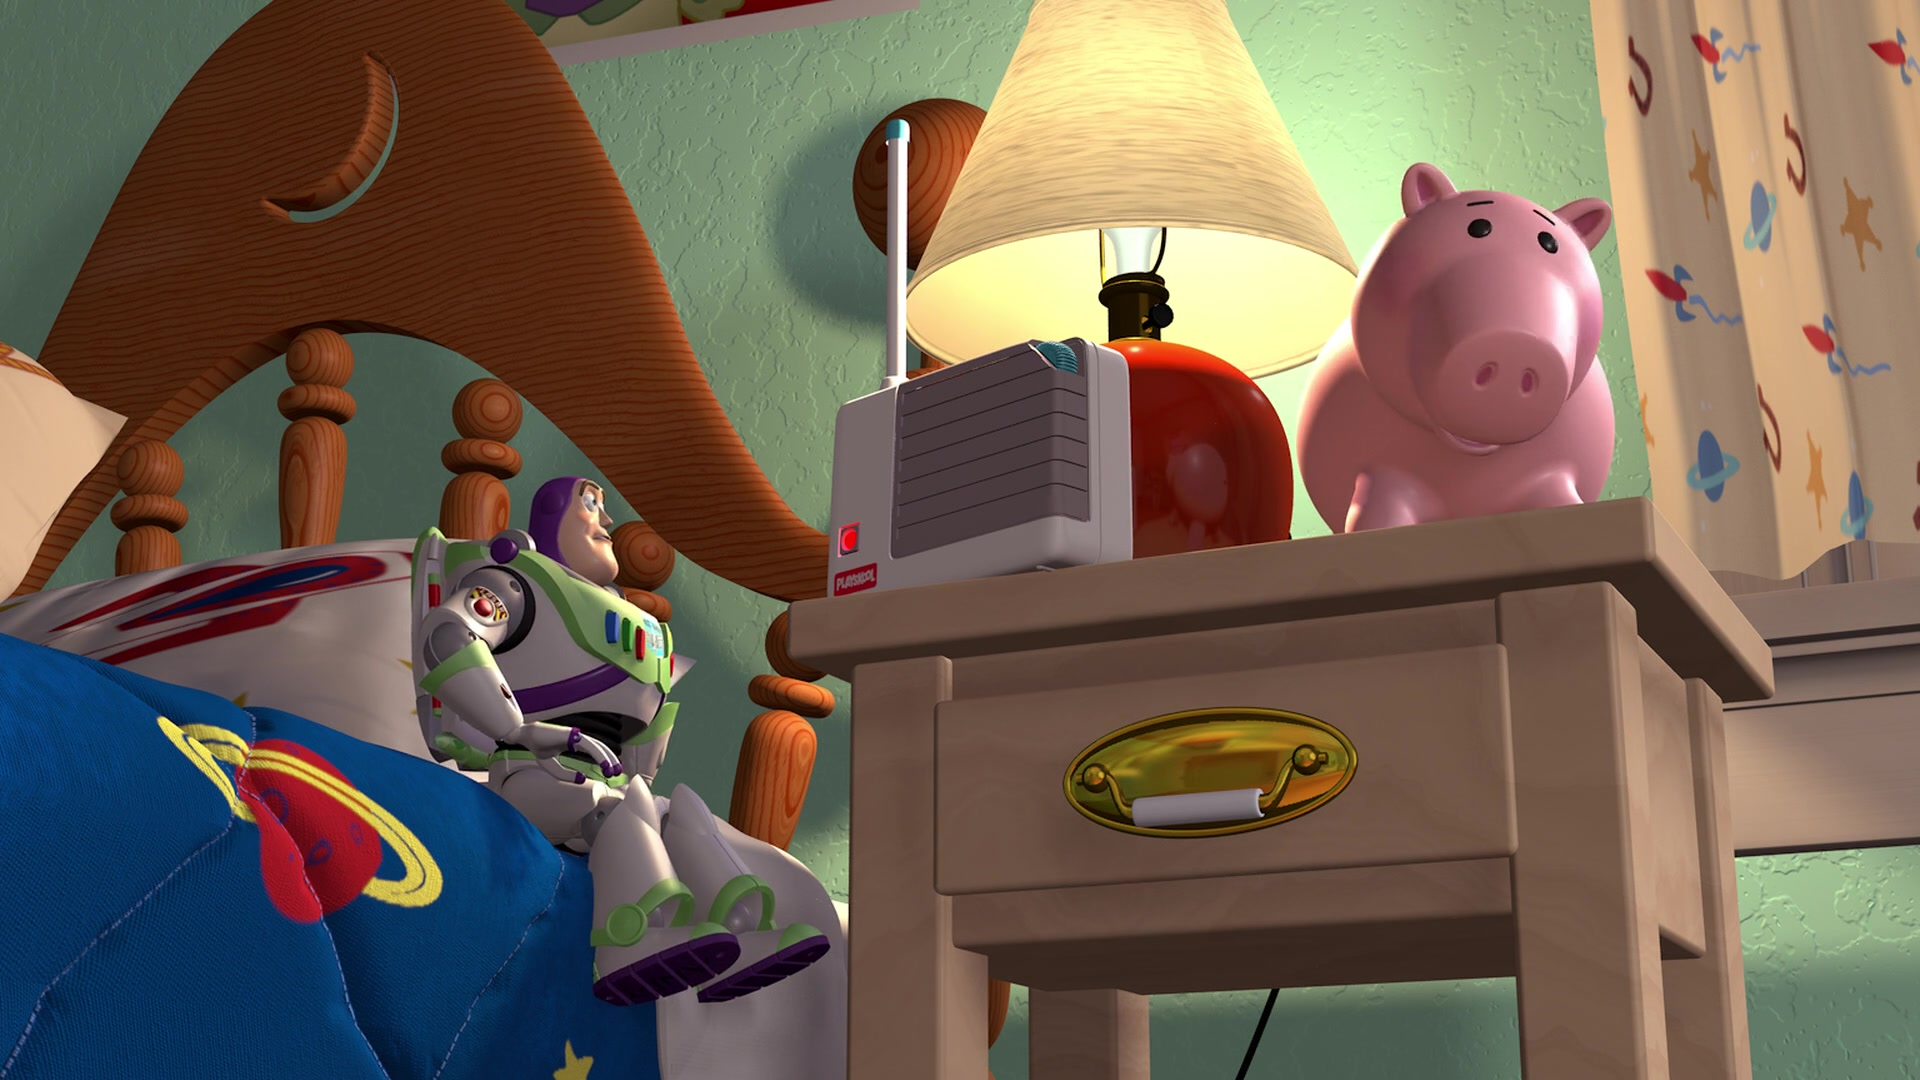 playskool baby monitors in toy story  1995  animation movie